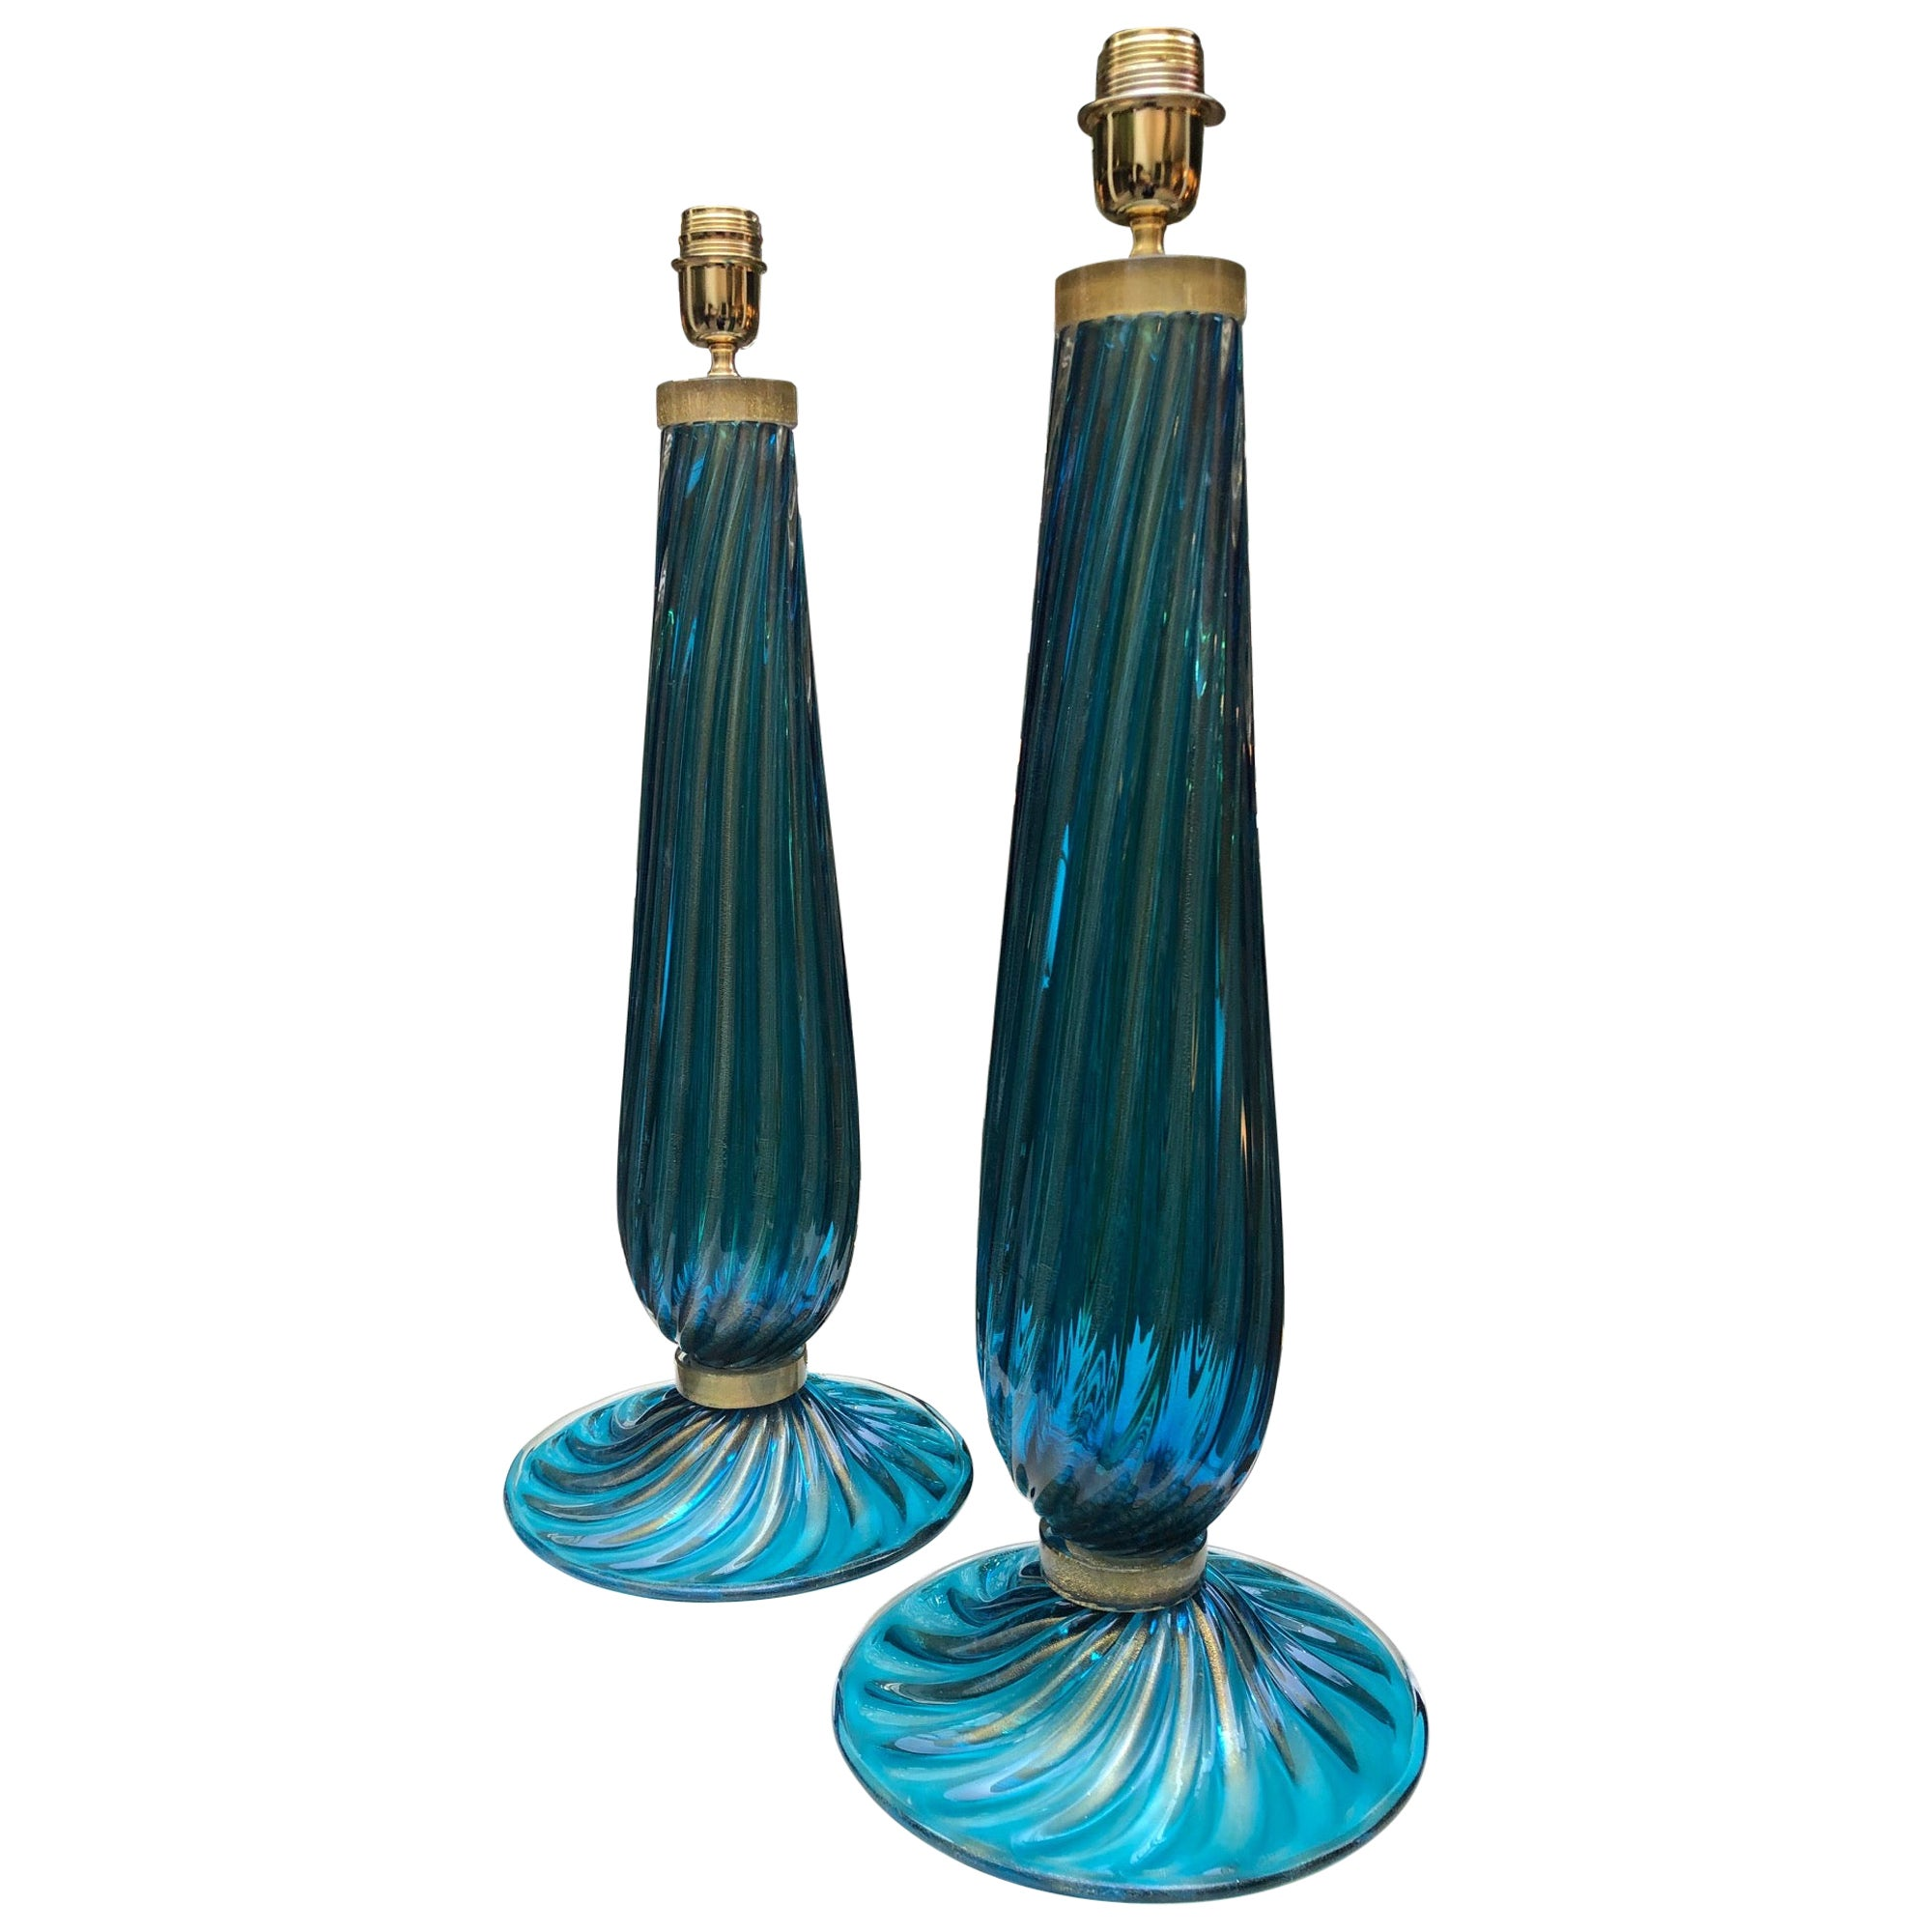 Pair of Table Lamps in Blue Murano Glass